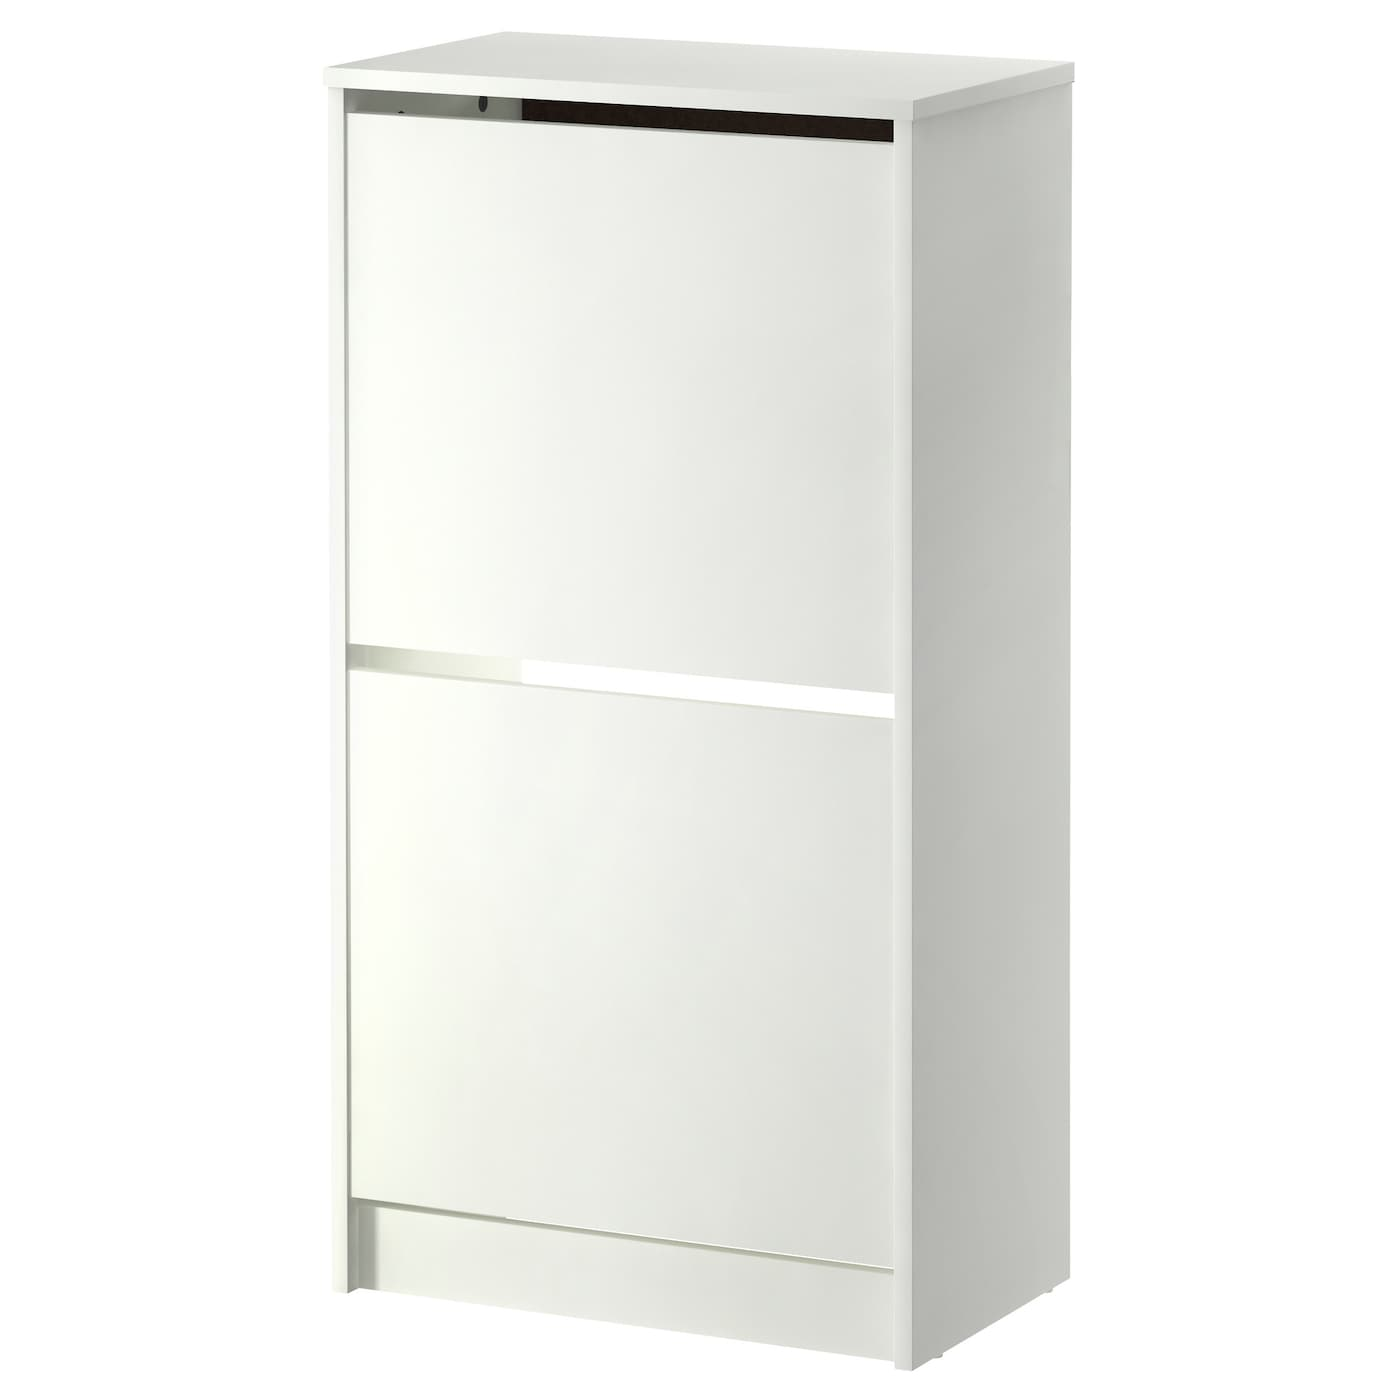 bissa shoe cabinet with 2 compartments white 49x93 cm ikea. Black Bedroom Furniture Sets. Home Design Ideas